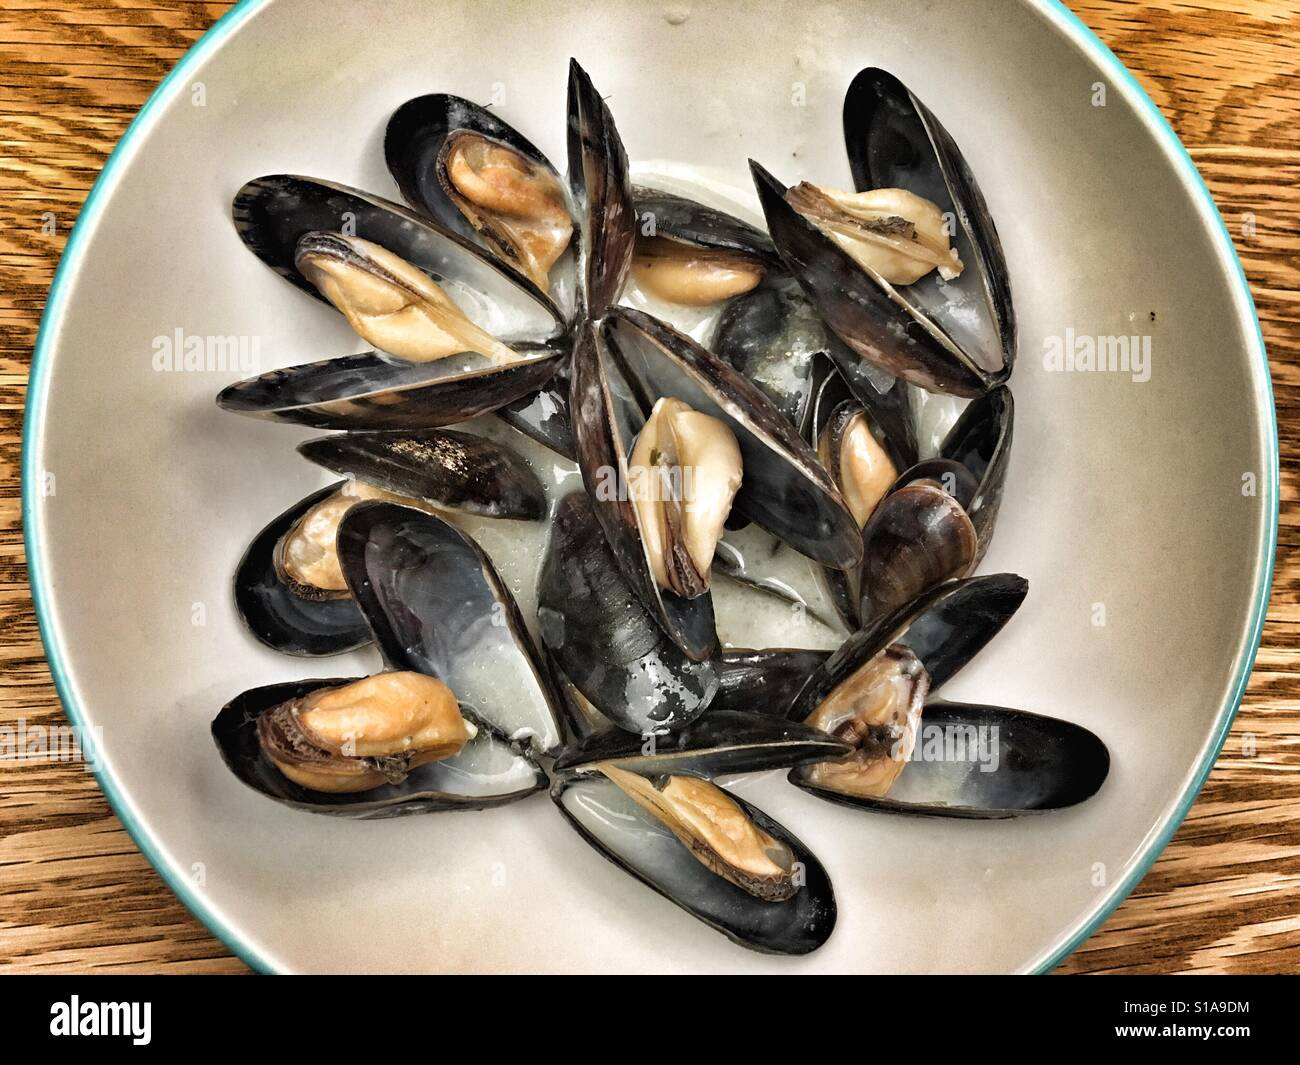 Mussels in white wine and cream sauce - Stock Image